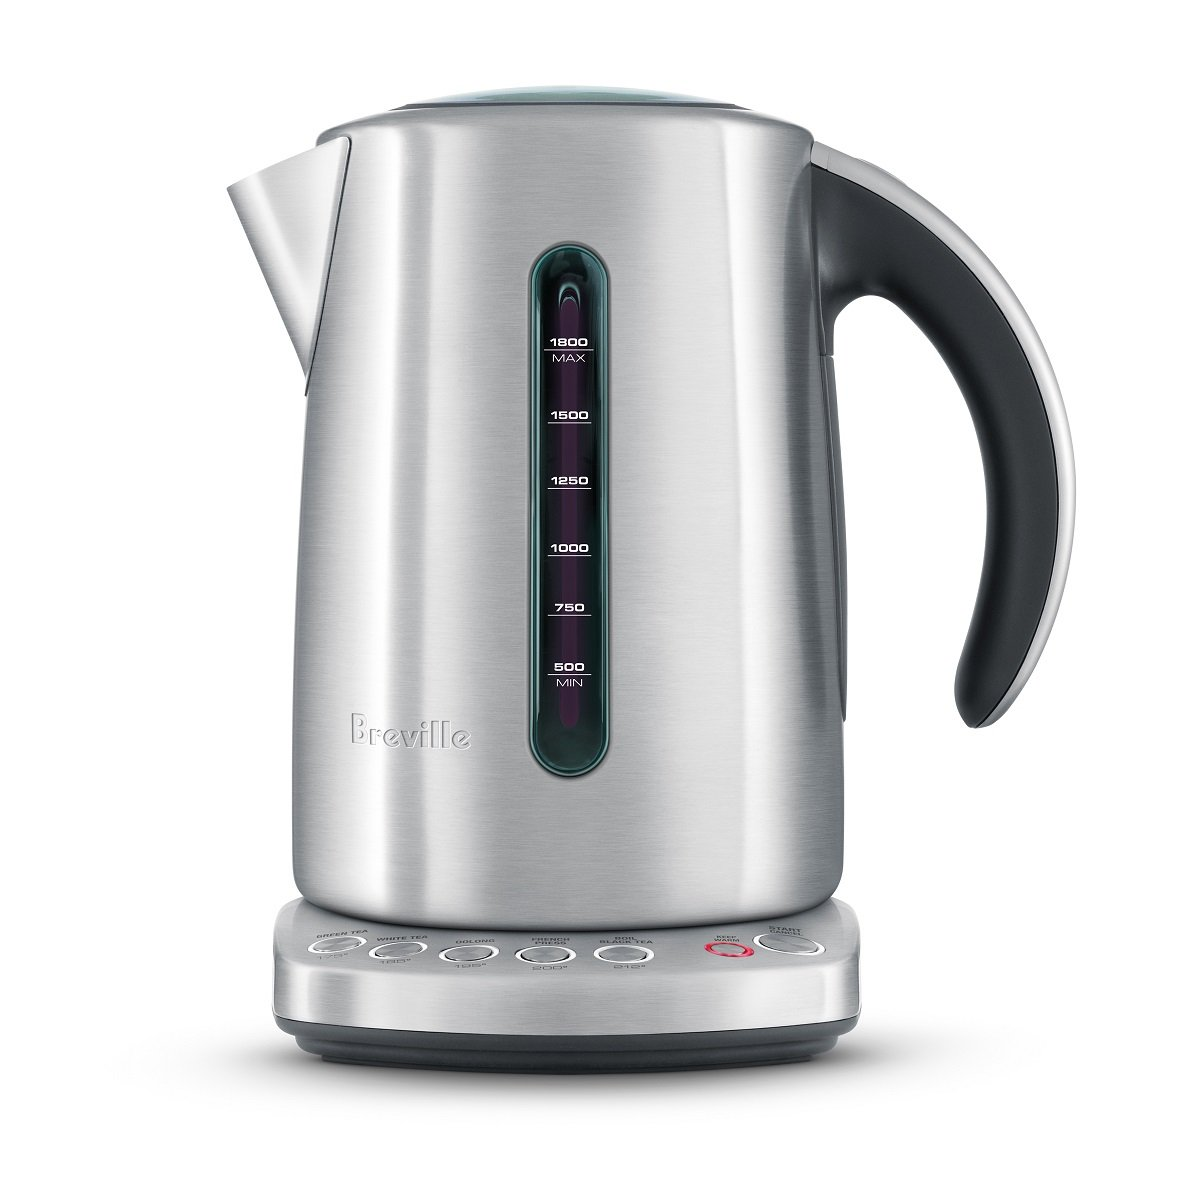 Breville BKE820XL Variable-Temperature 1.8-Liter Kettle by Breville (Image #3)